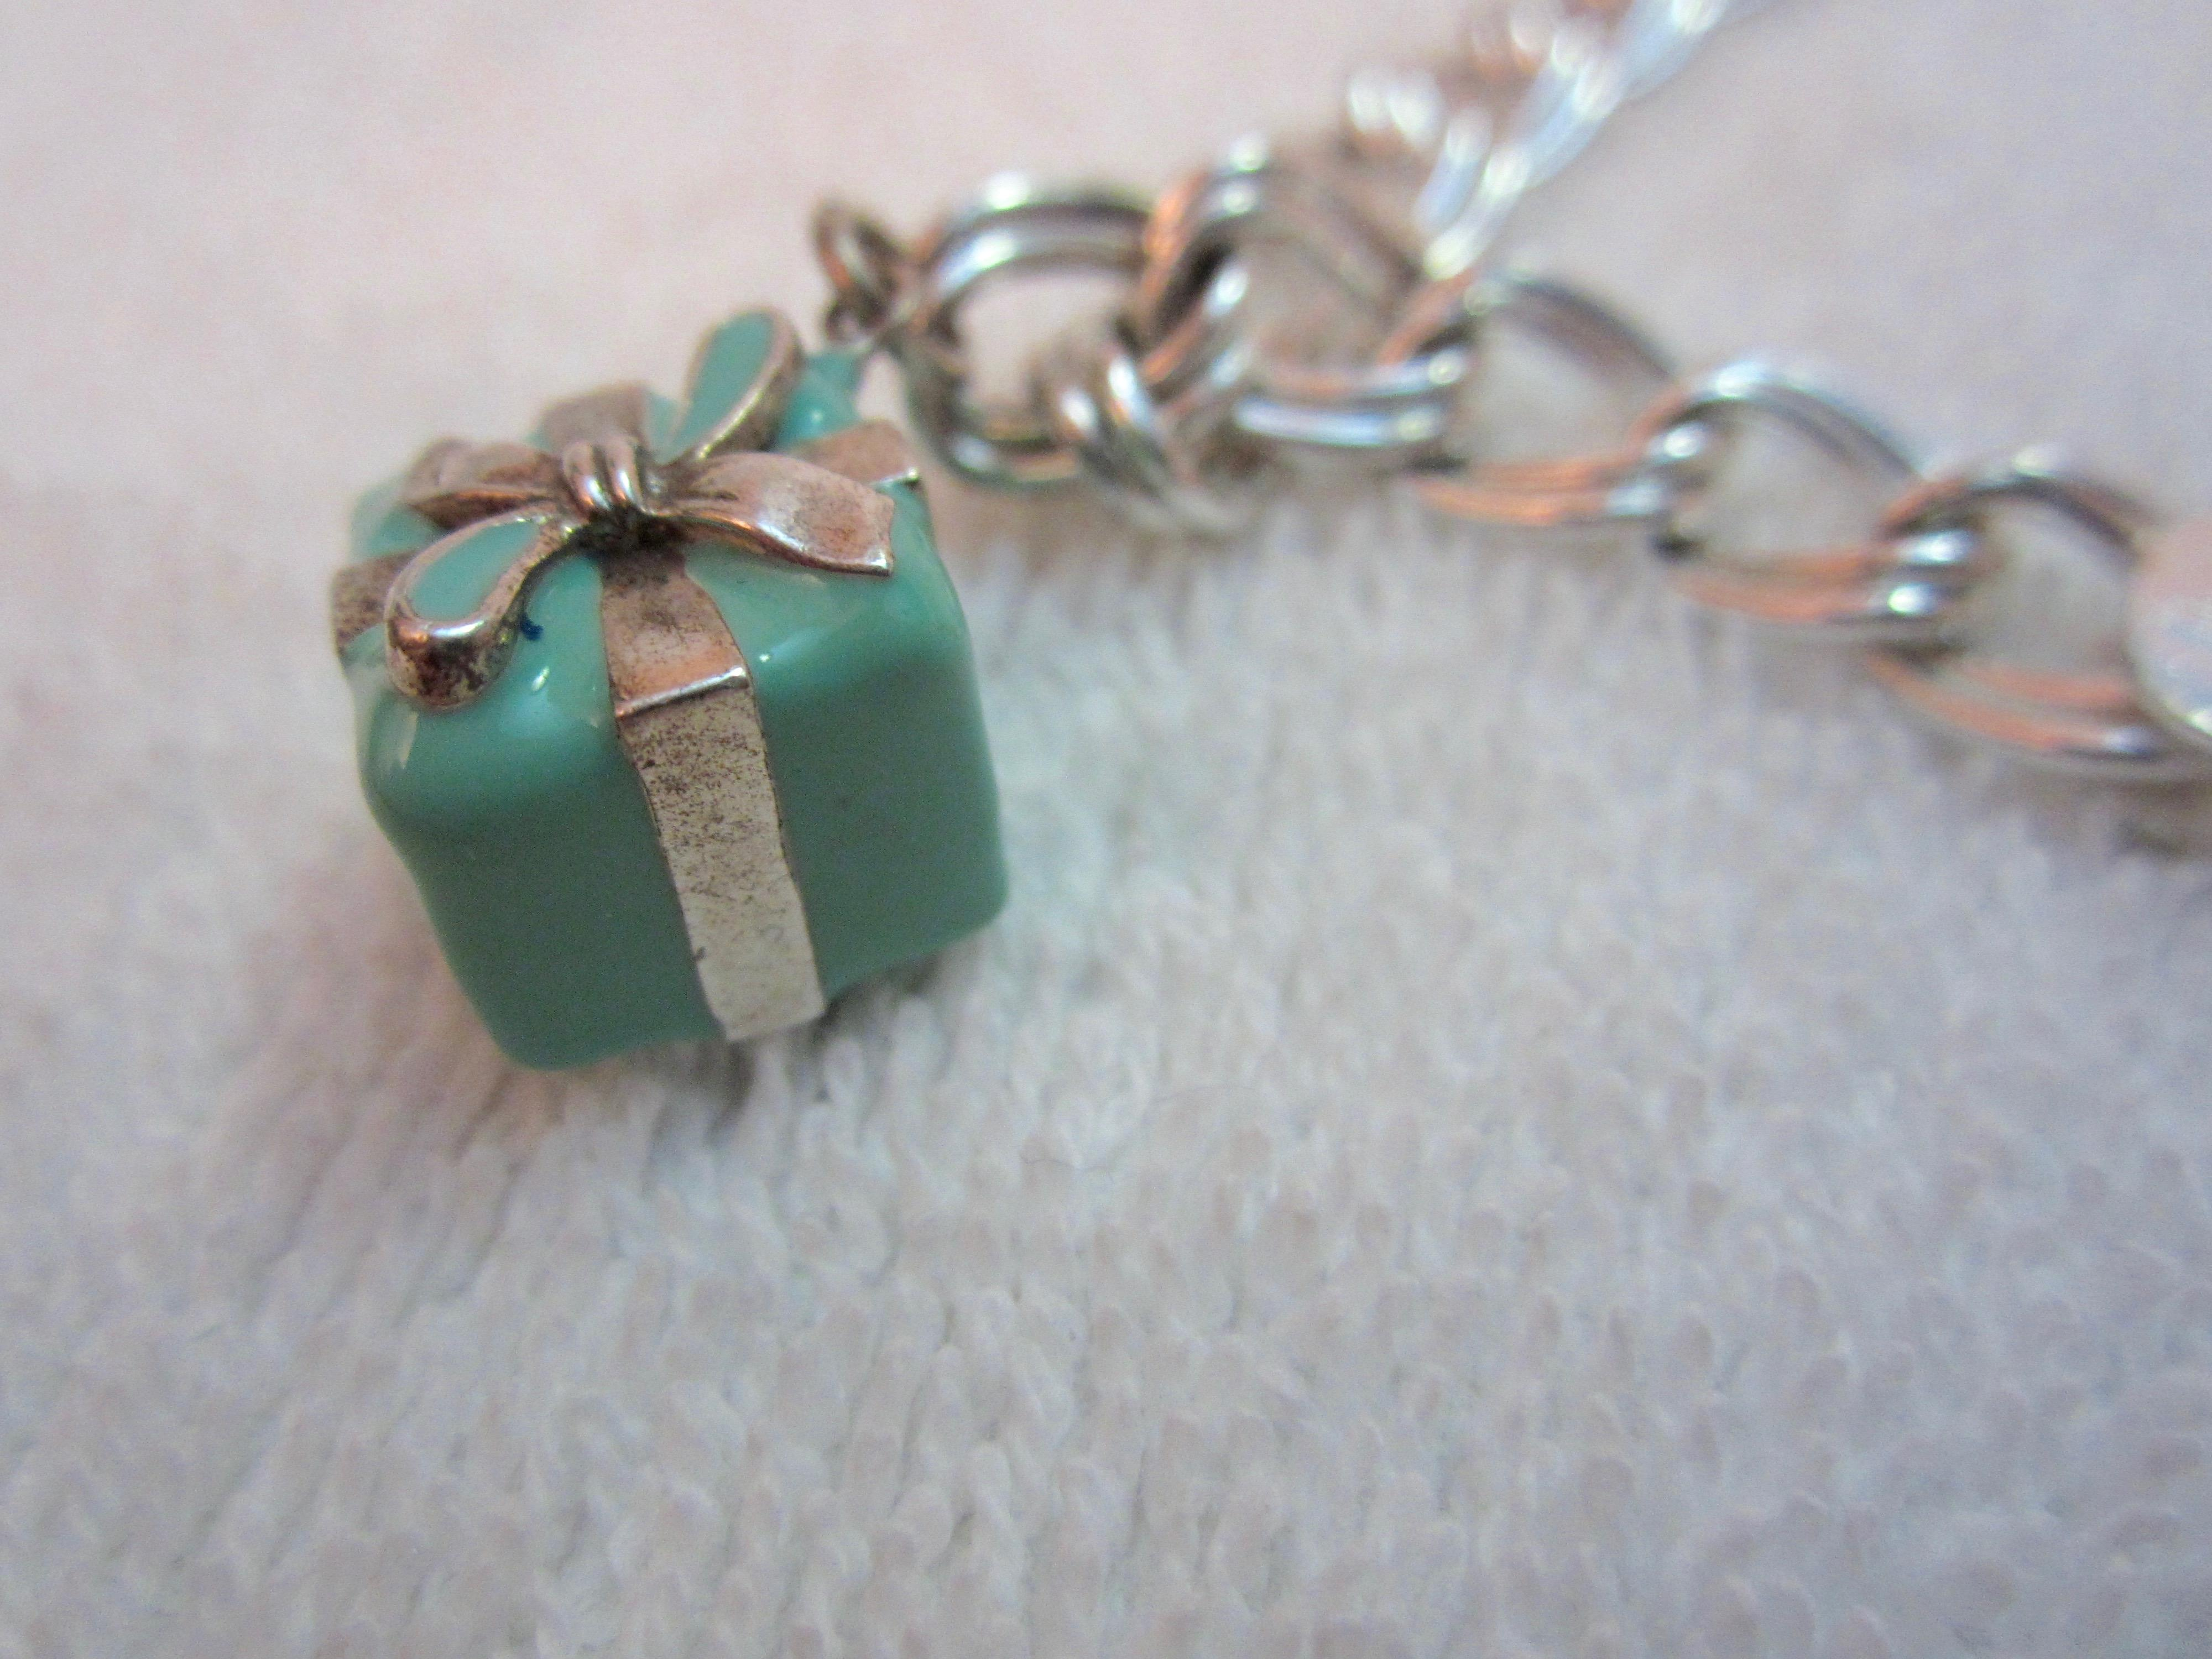 Tiffany Co Silver and Blue Box Charm Bracelet Sterling 925 2